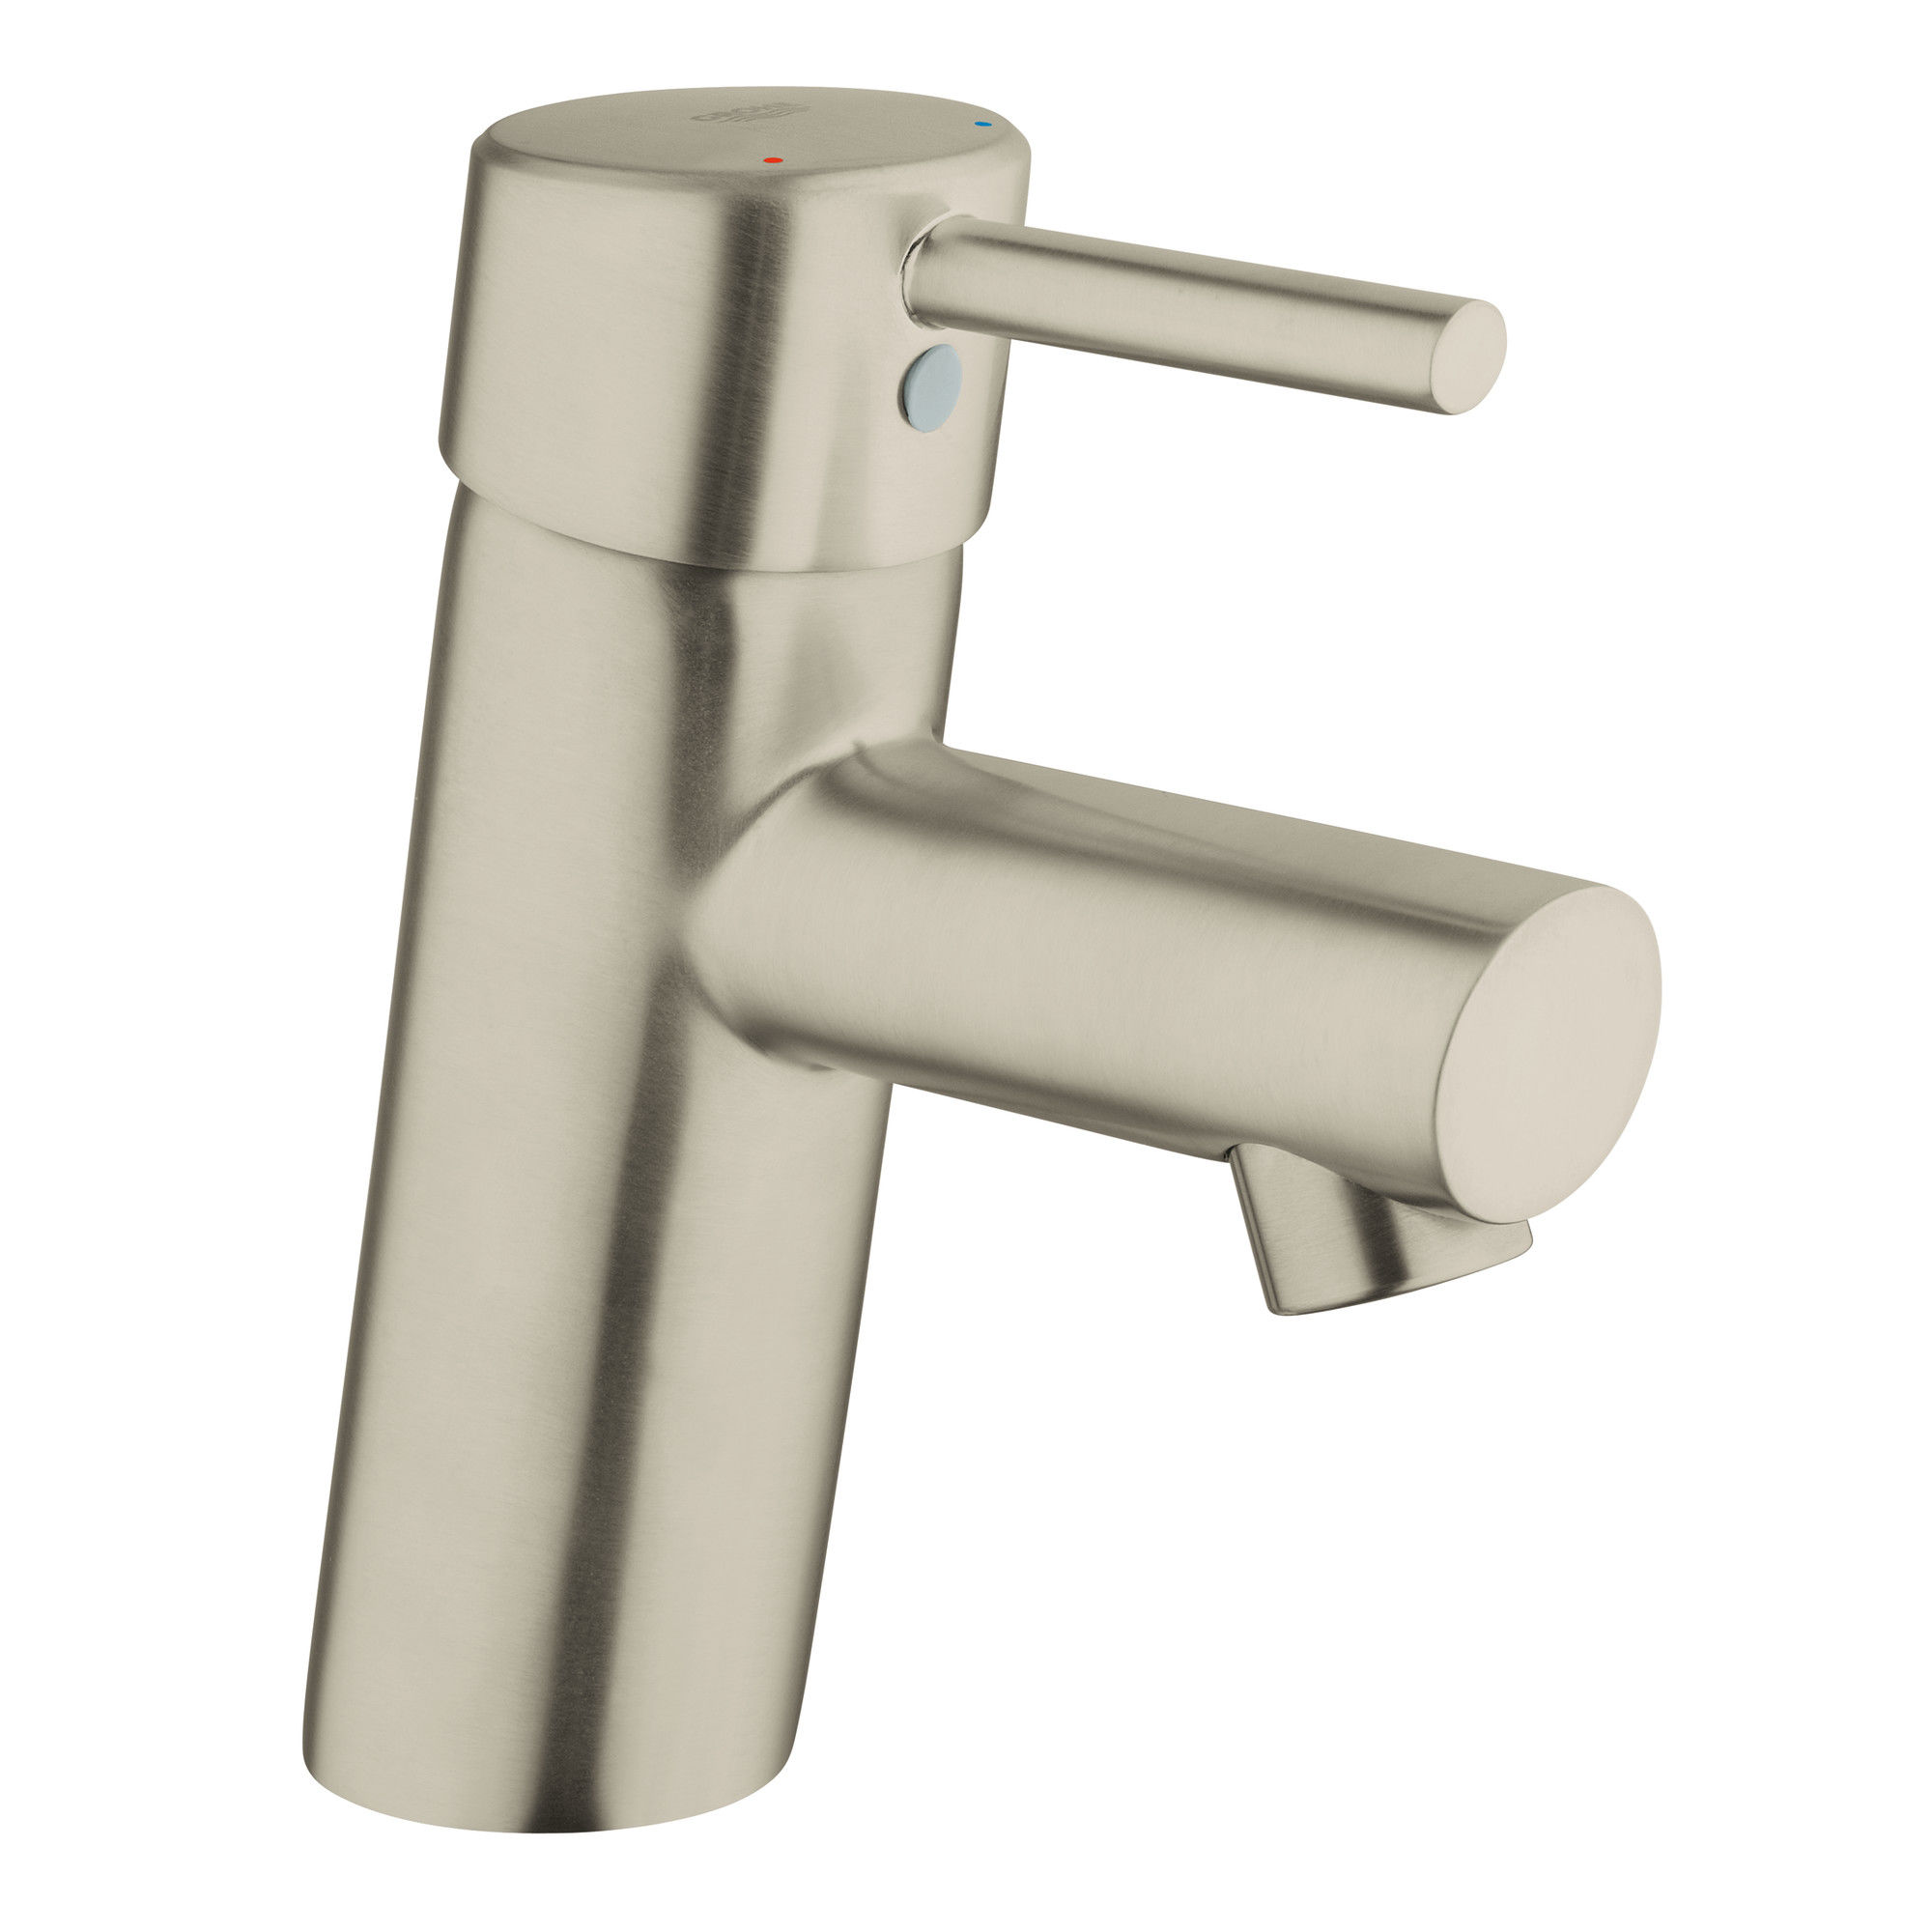 Grohe 34271001 Starlight Chrome Concetto New Bathroom Faucet with ...